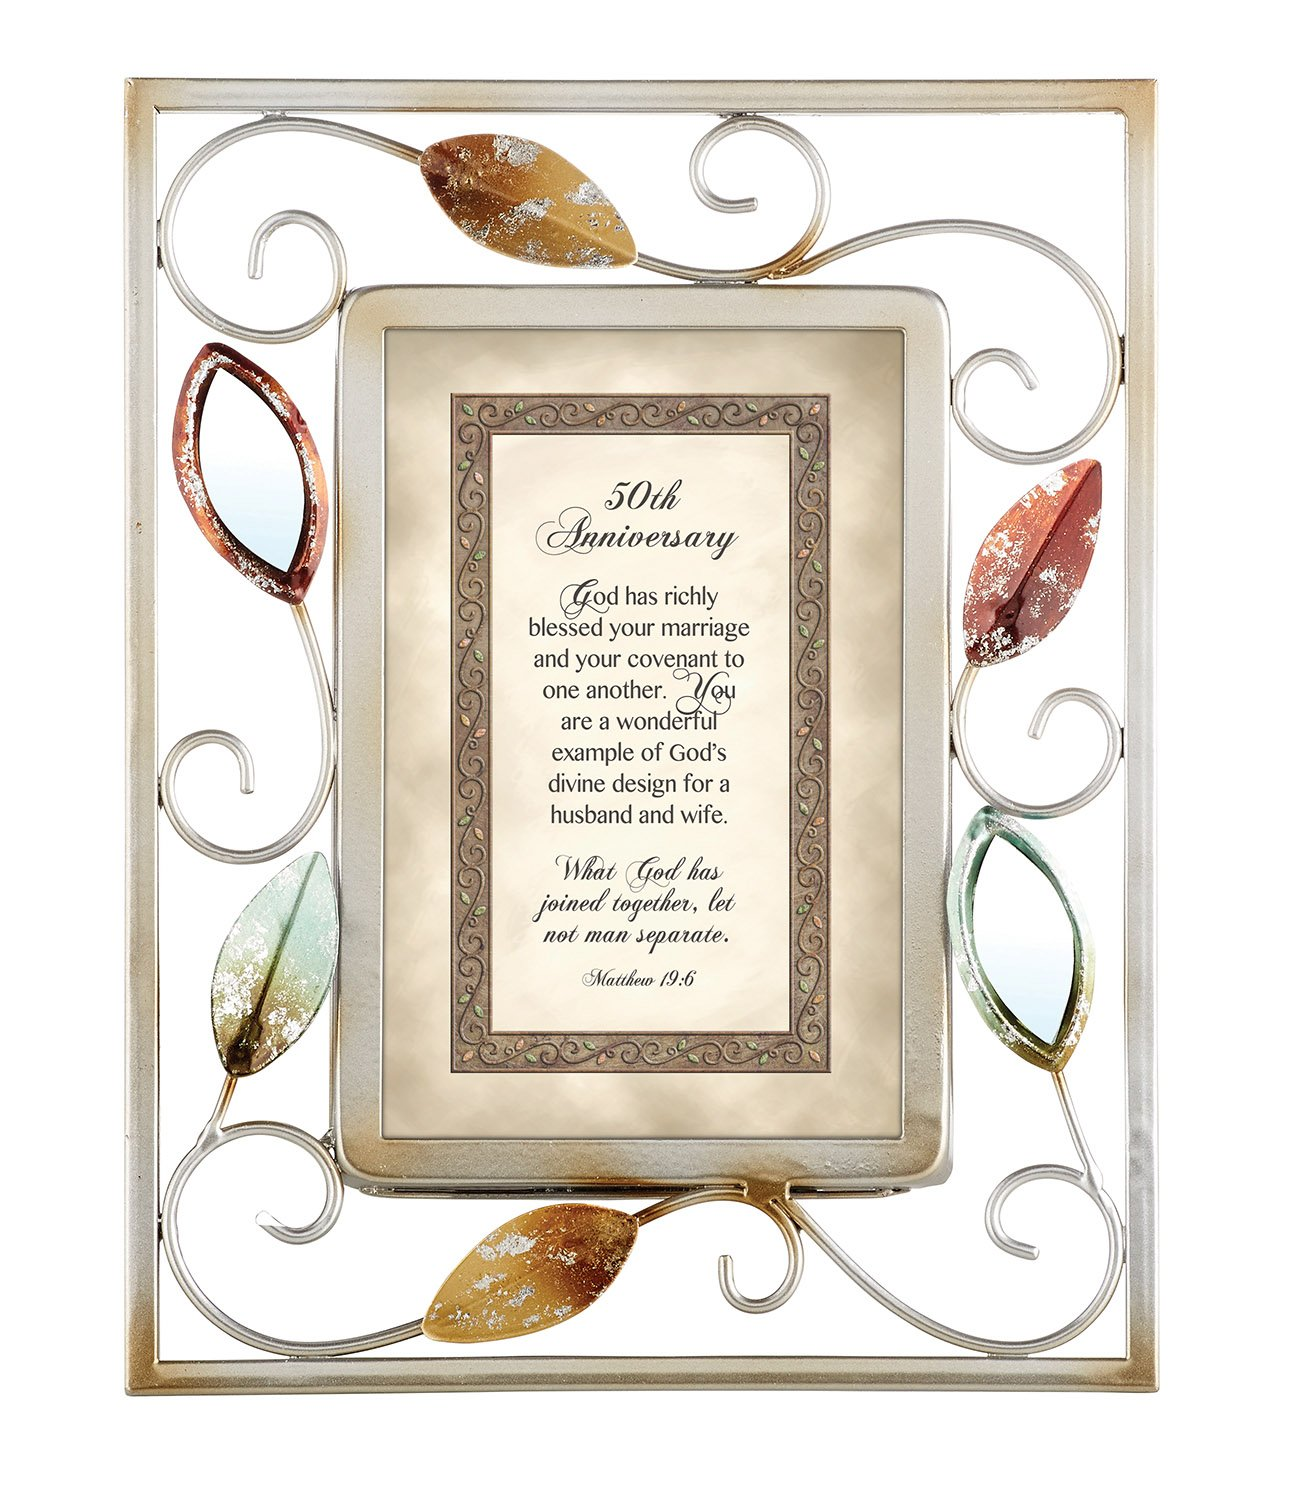 CB Gift Heartwarming Expressions 50th Anniversary Metal Framed Print